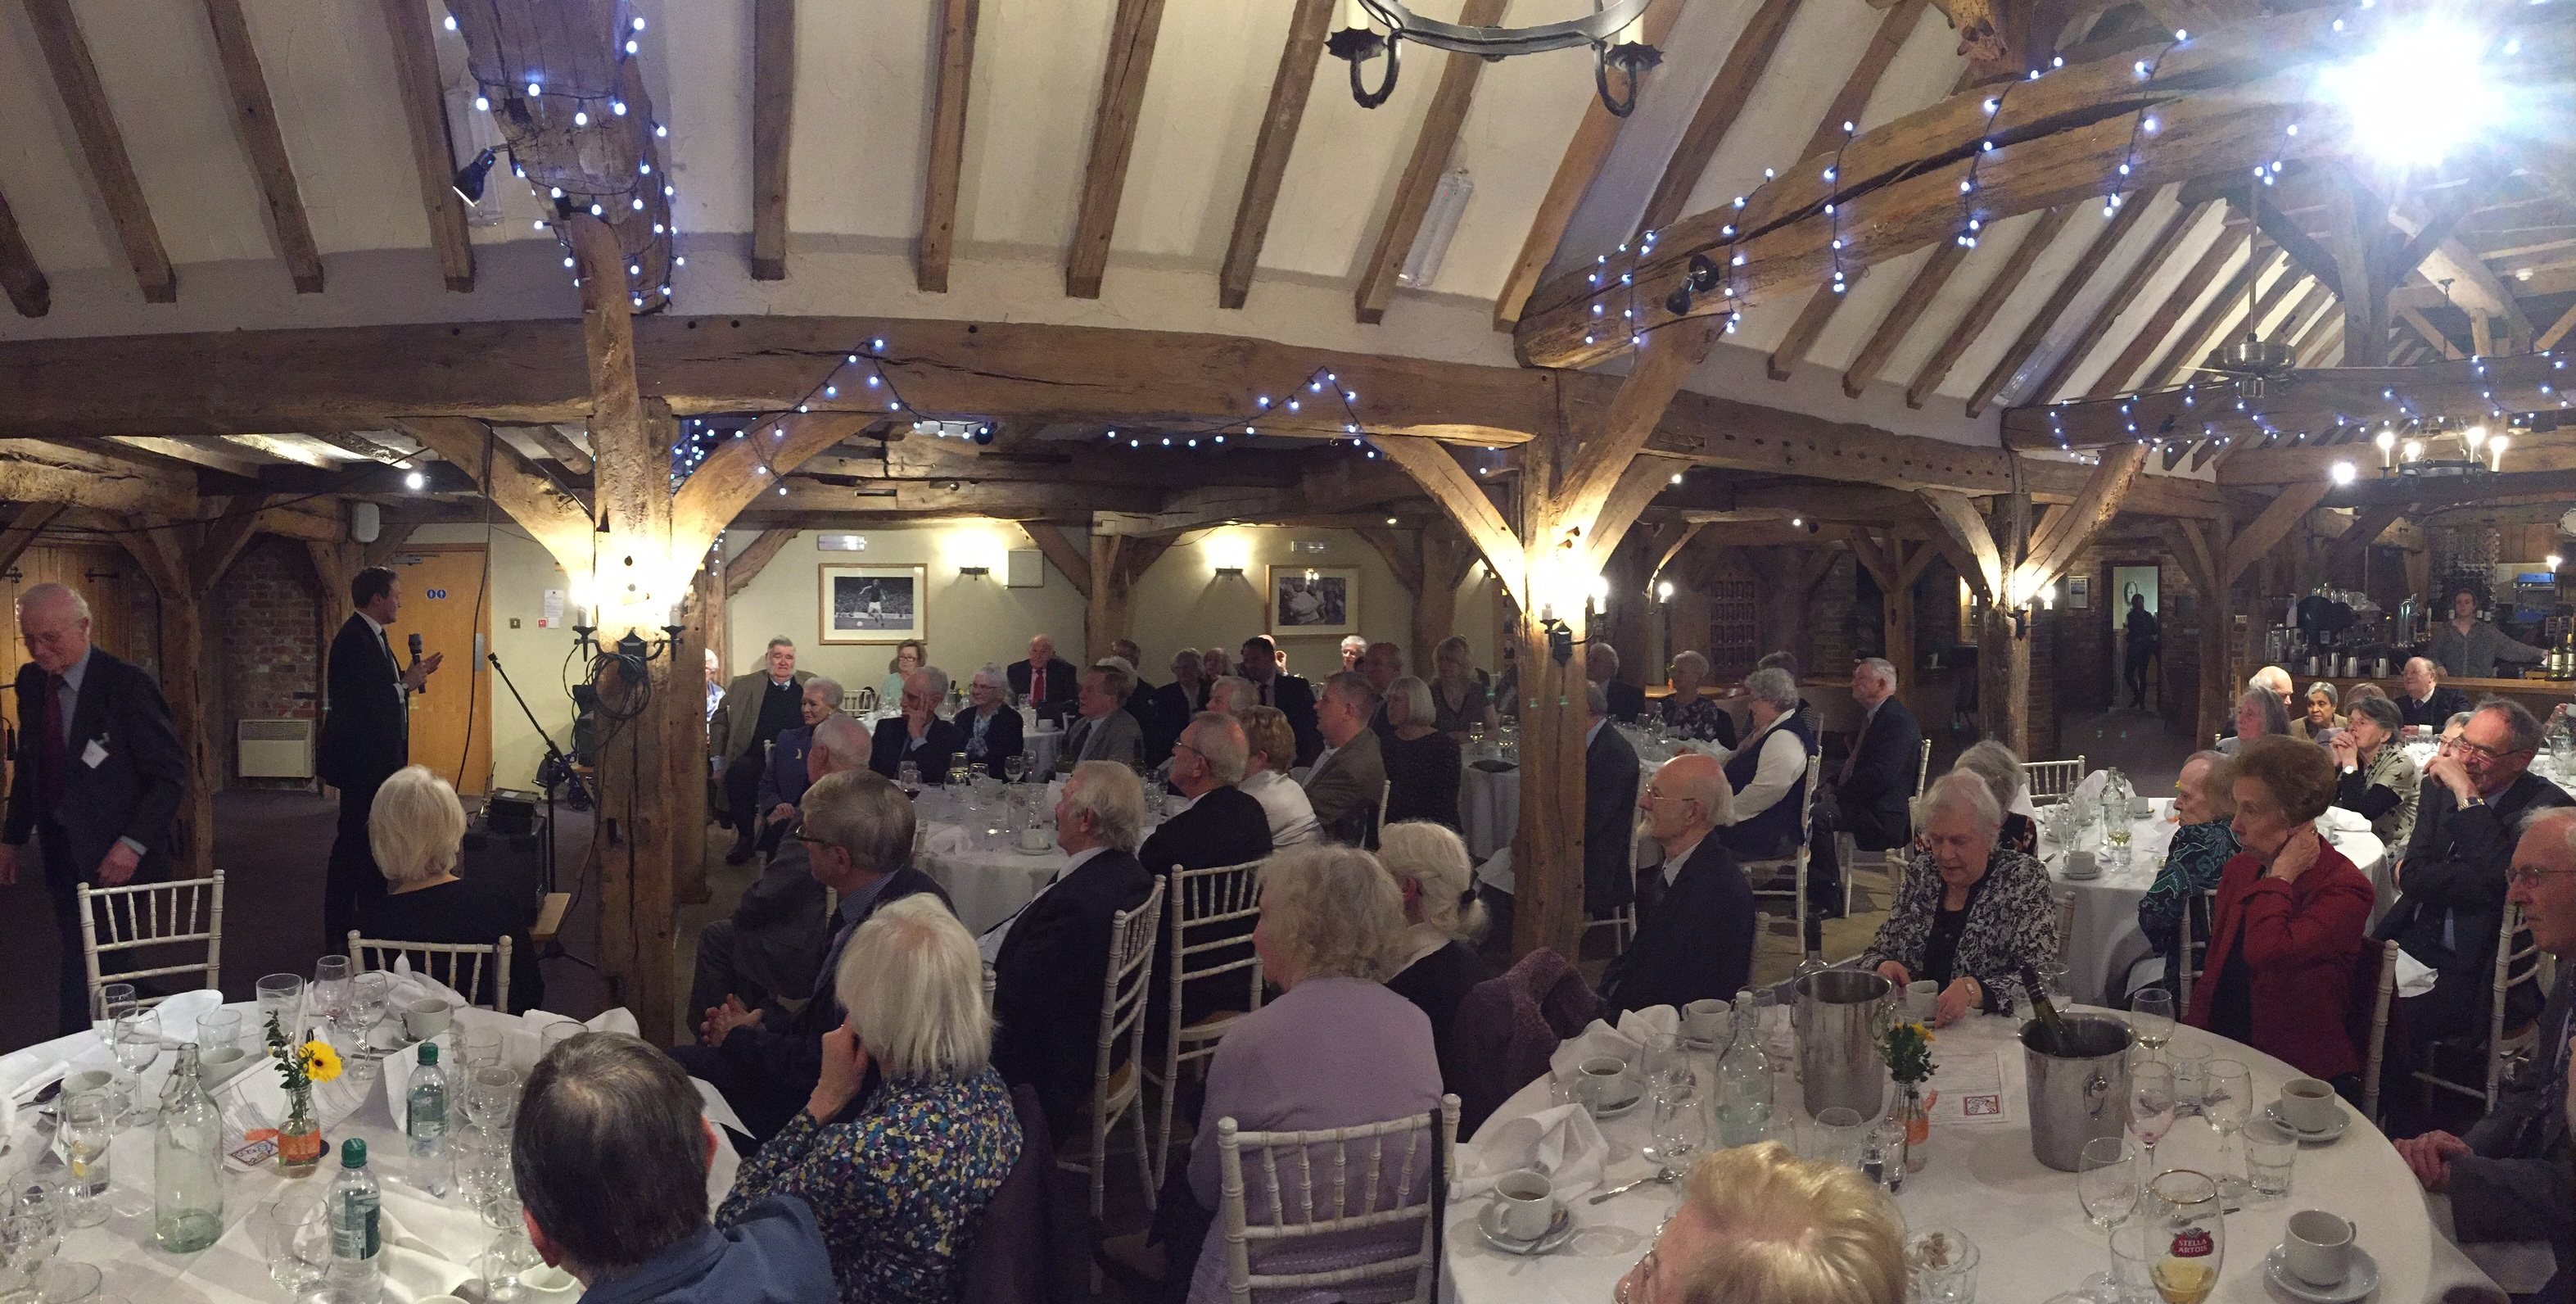 Tom Tugendhat speaking to the Supper Club